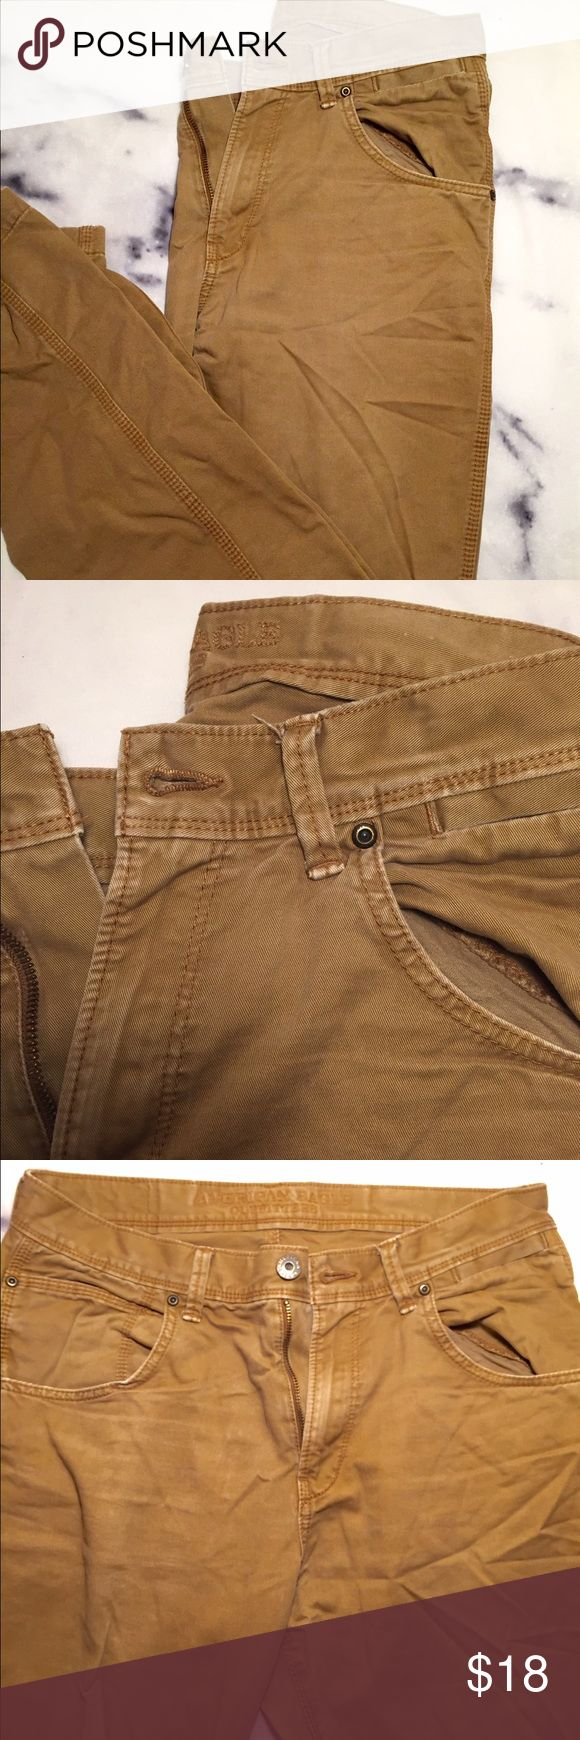 Men's 32/34 American Eagle Outfitters pants. Men's 32/34 American Eagle Outfitters pants. Worn maybe 12-15 times. American Eagle Outfitters Pants Chinos & Khakis